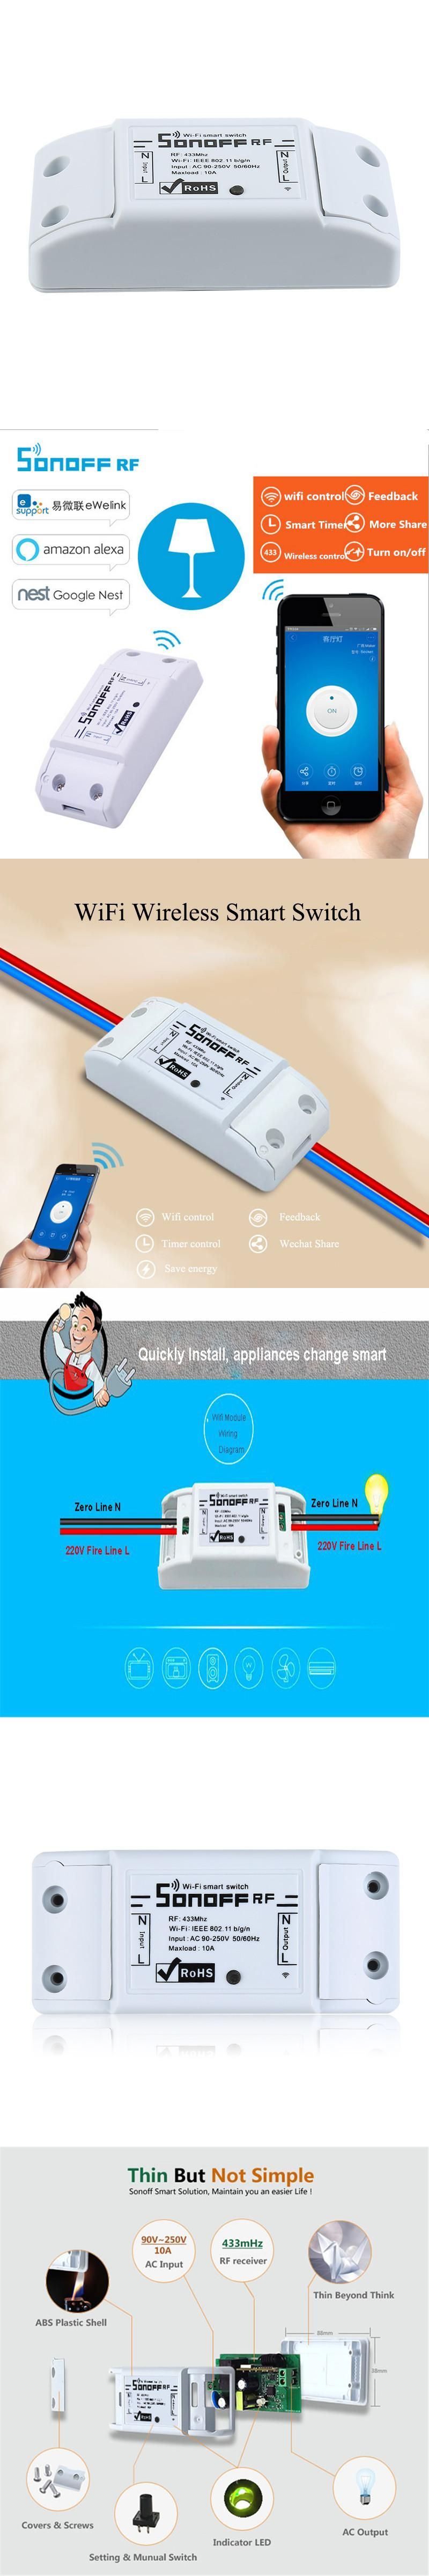 transmitter wall for compatible pin control controller light broadlink wireless switch rm pro touch rf remote